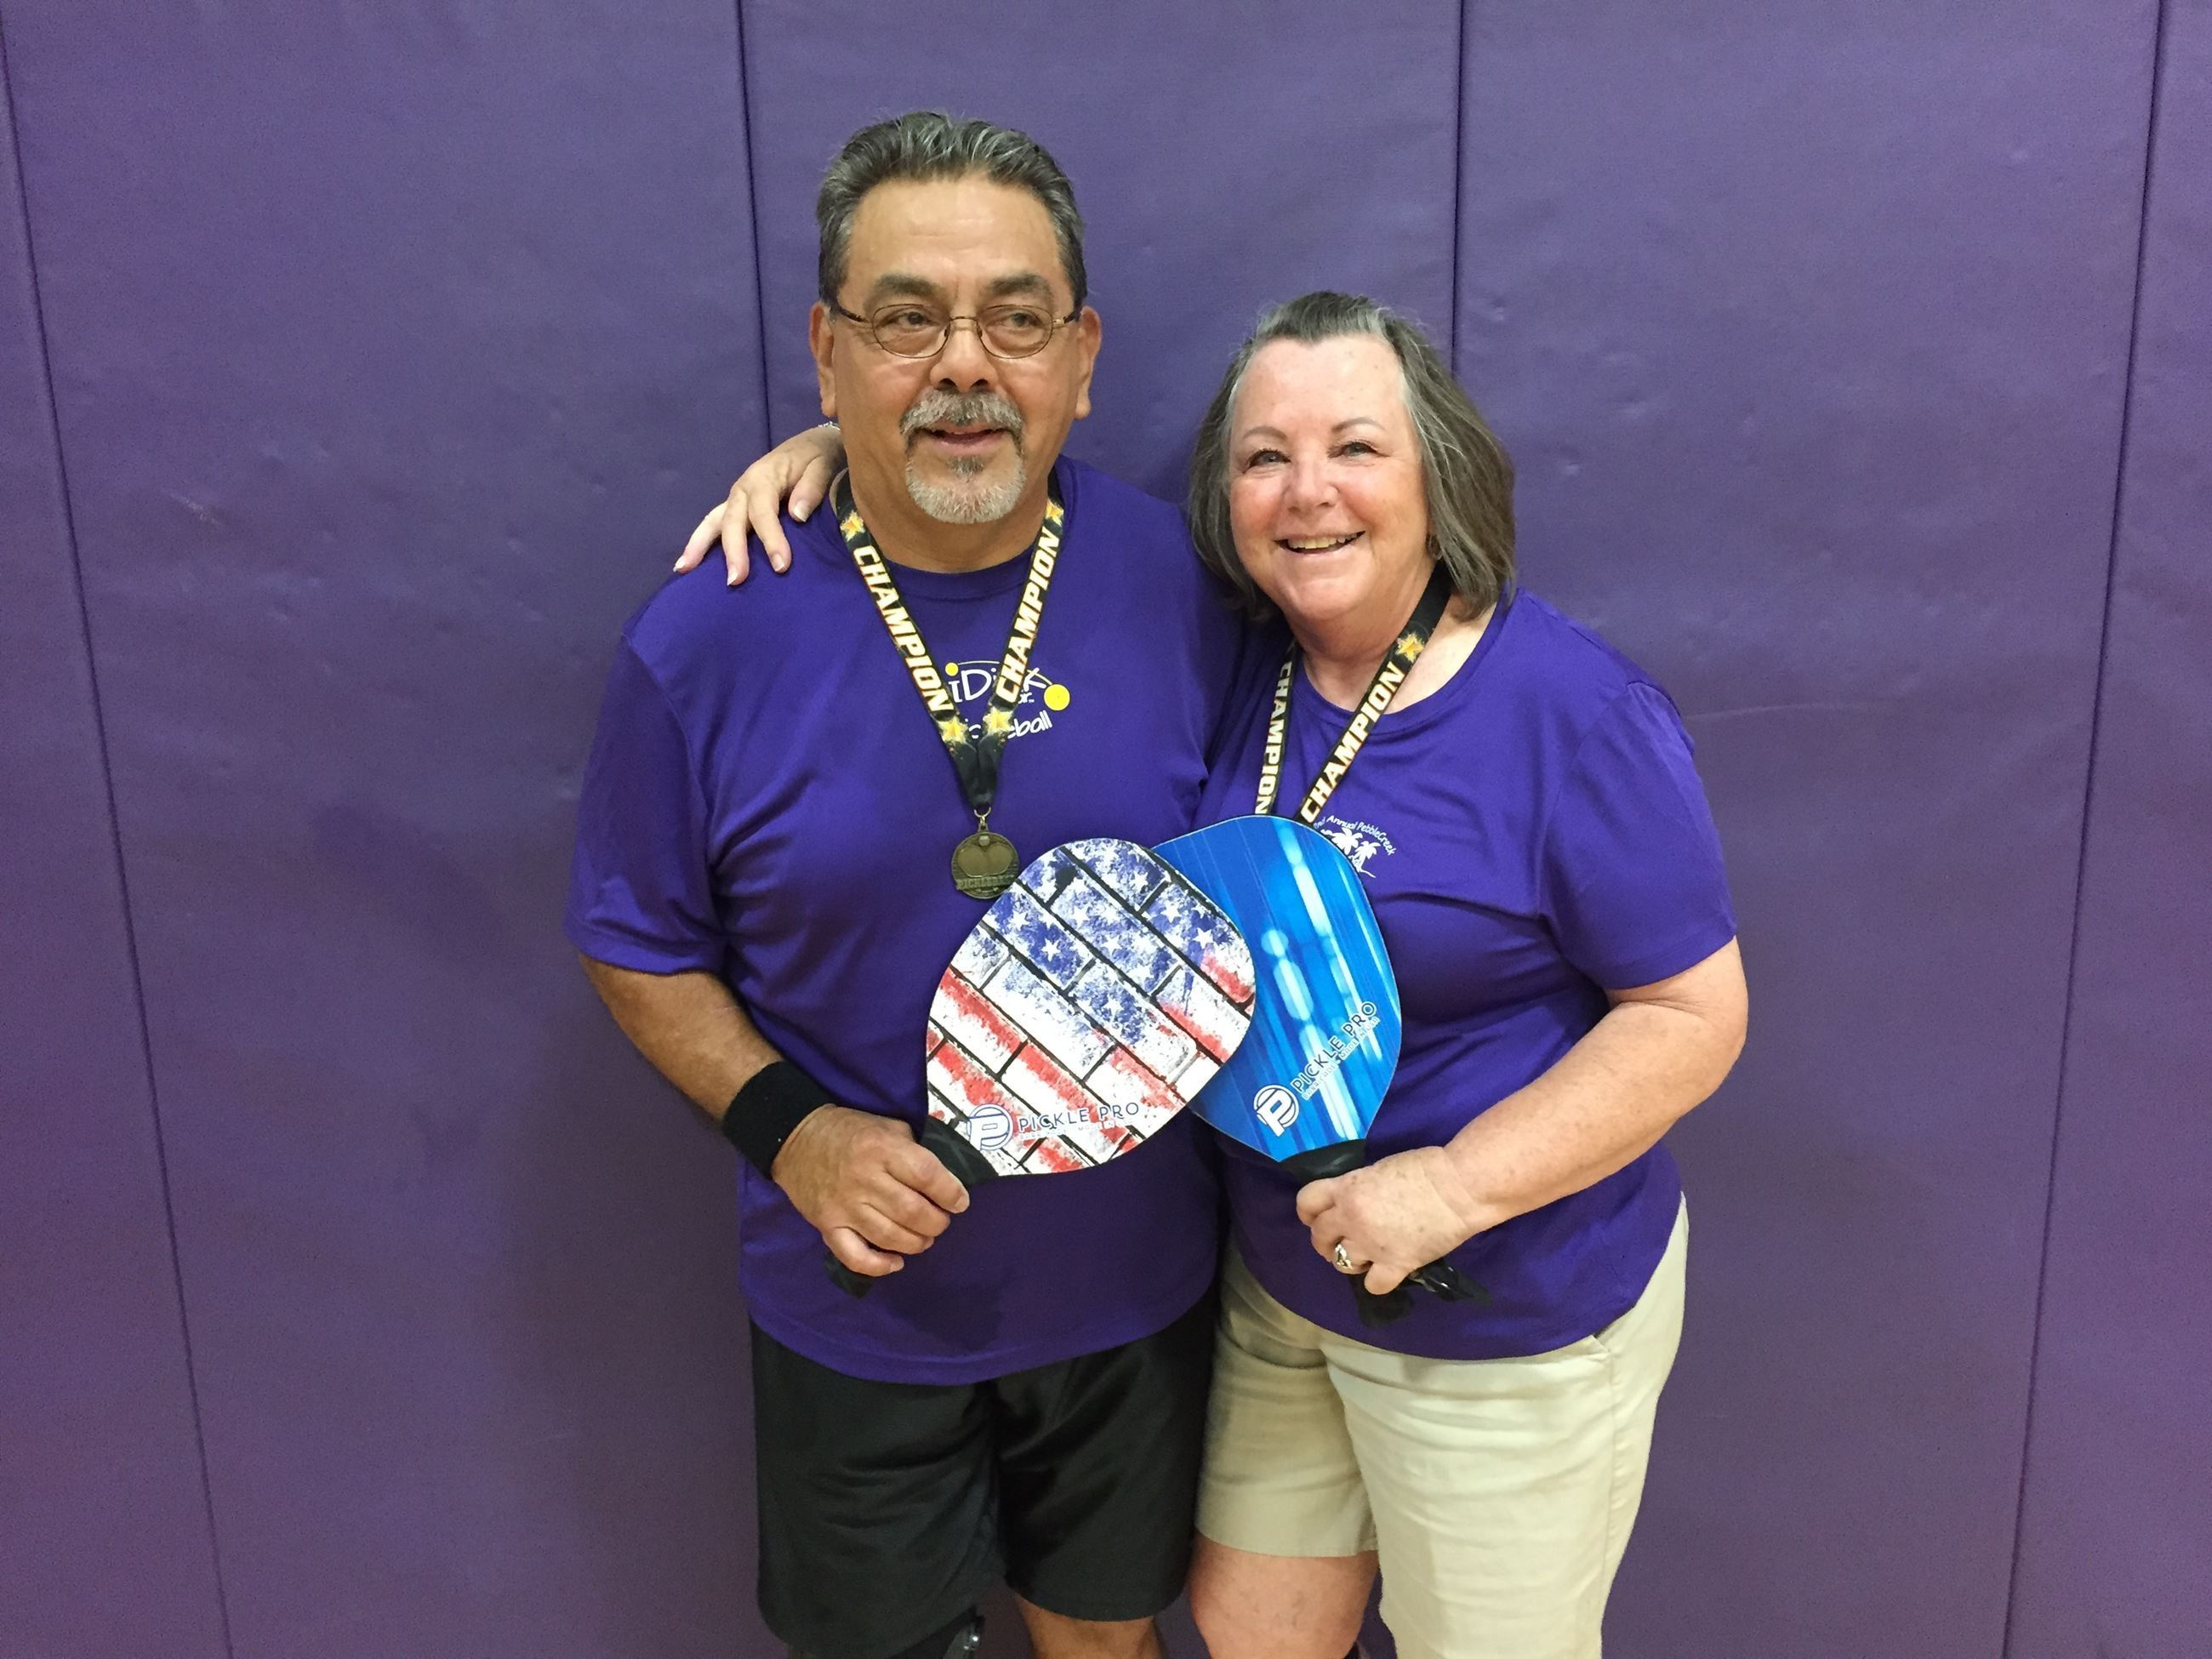 Robert and Glenda at the 2017 Pickleball Tournament